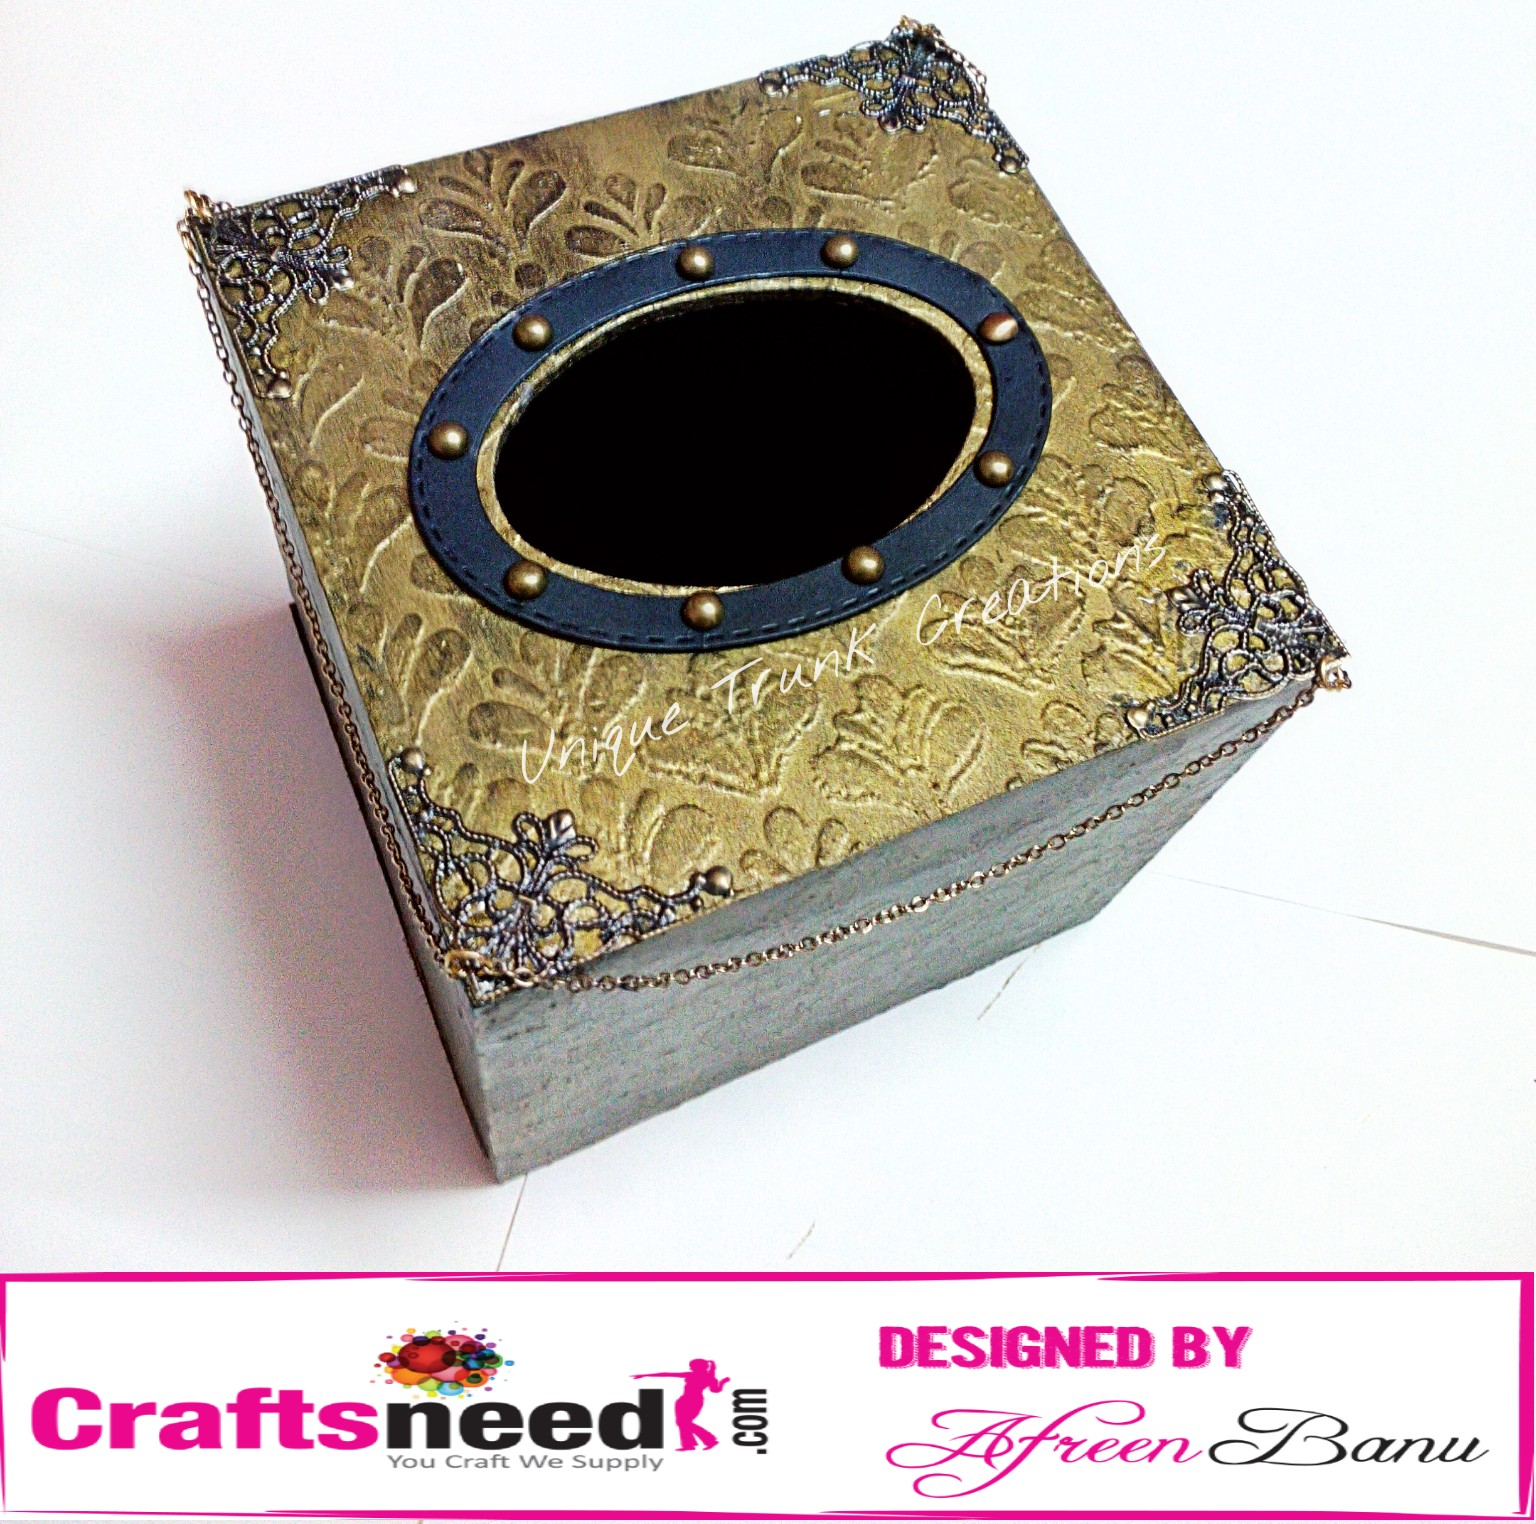 Crafts supply online shop in india buy arts crafts online step 6 to add some beauty to the box i added oval stitched die cut embellished with brads adhered it to the center of the box fandeluxe Image collections